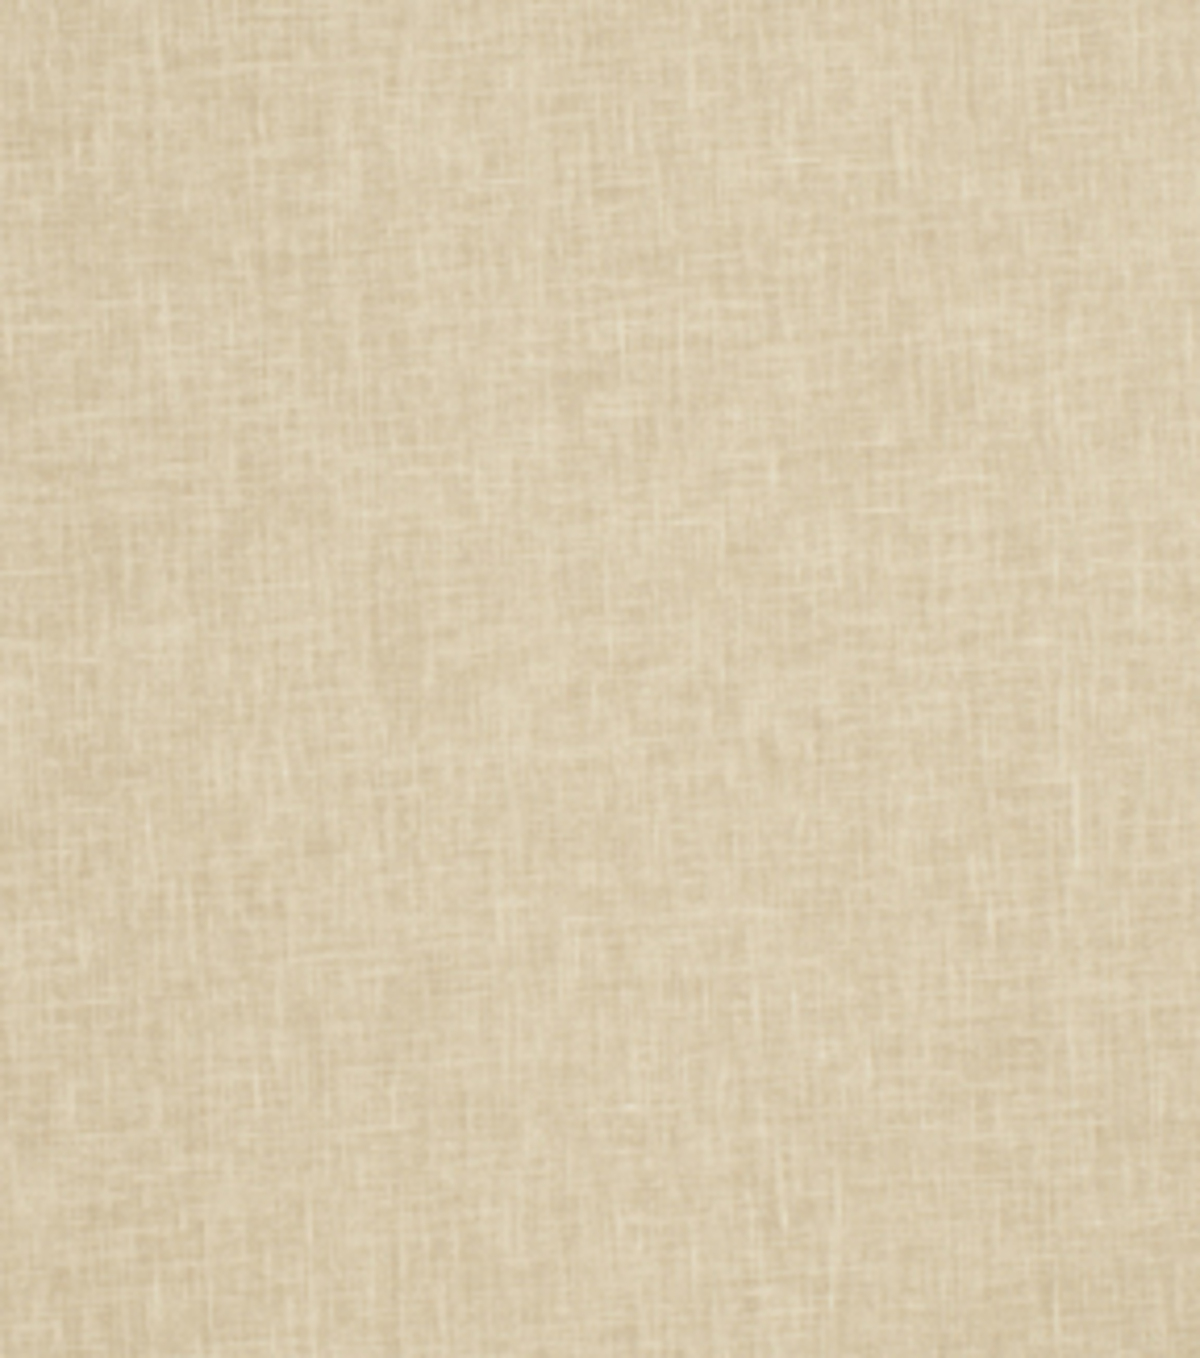 Home Decor 8\u0022x8\u0022 Fabric Swatch-Eaton Square Bannister Parchment